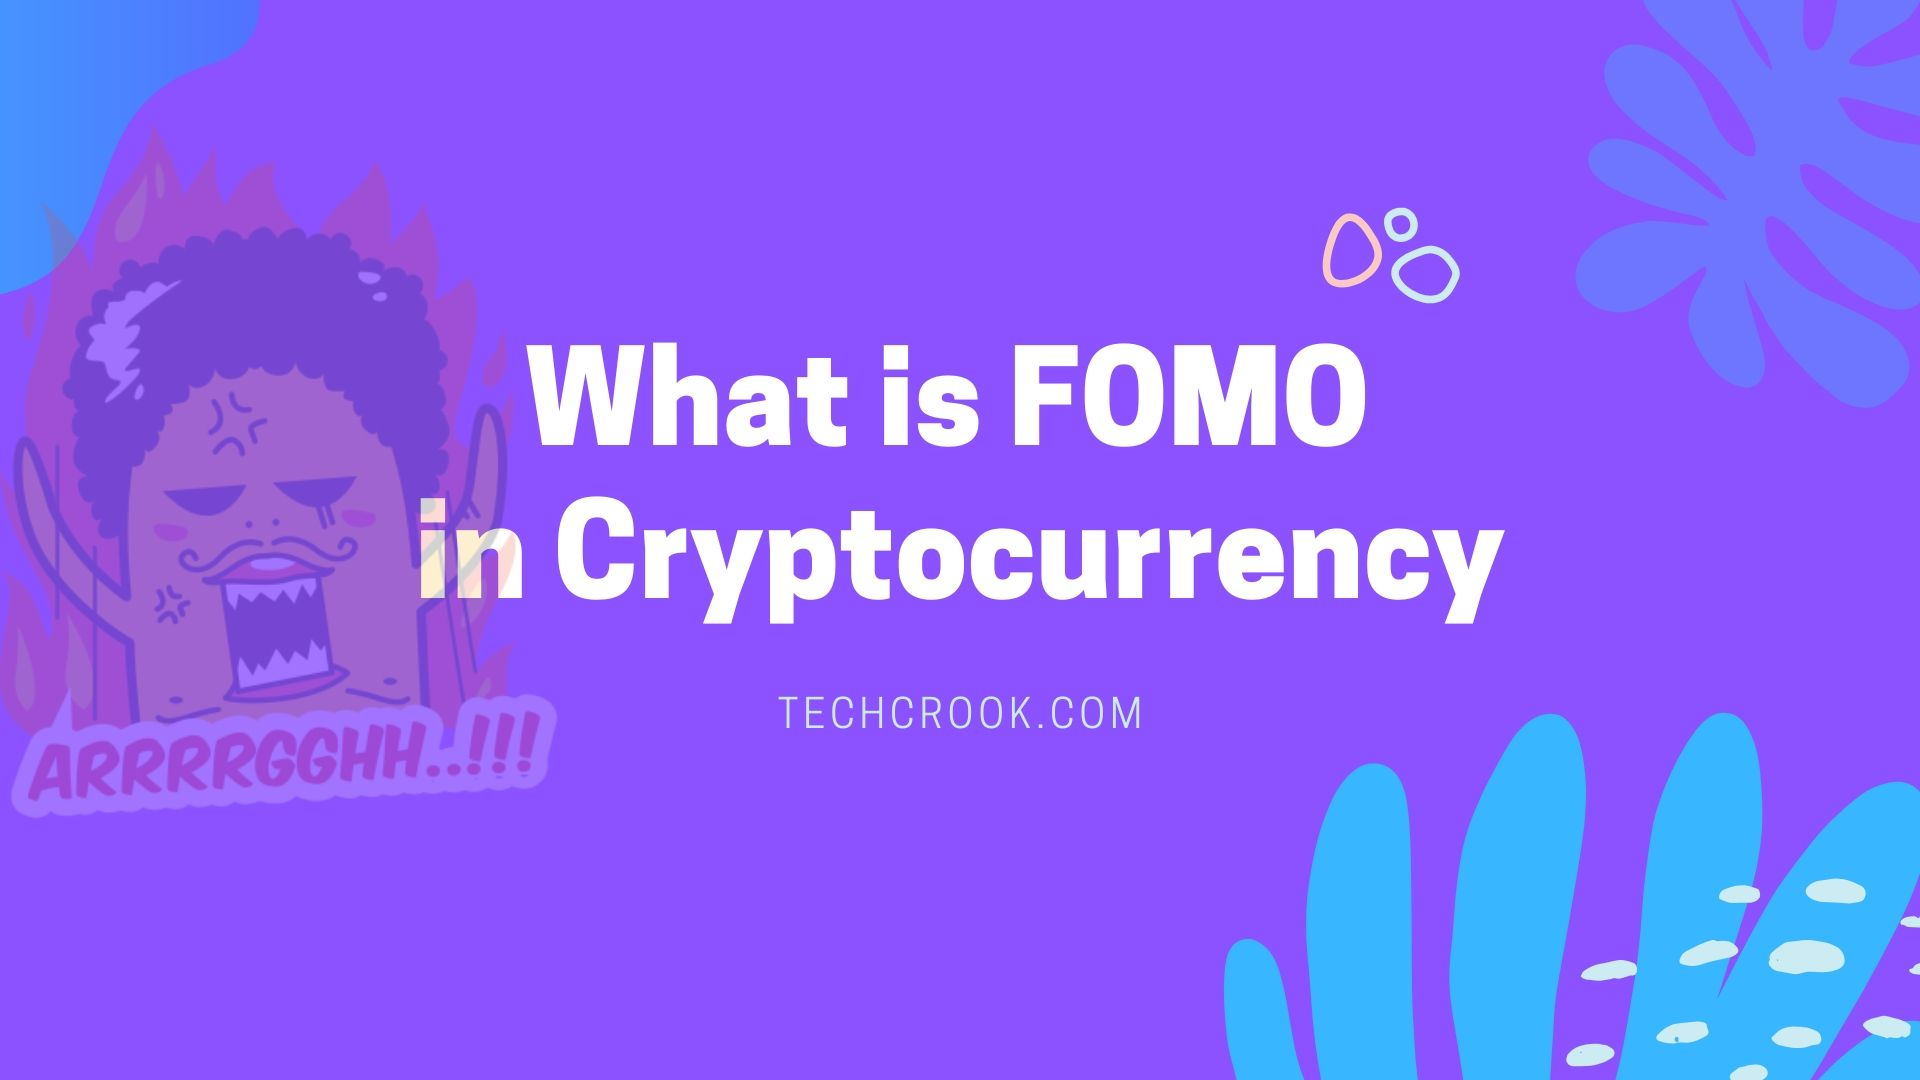 What is Cryptocurrency FOMO? And How to respond to FOMO